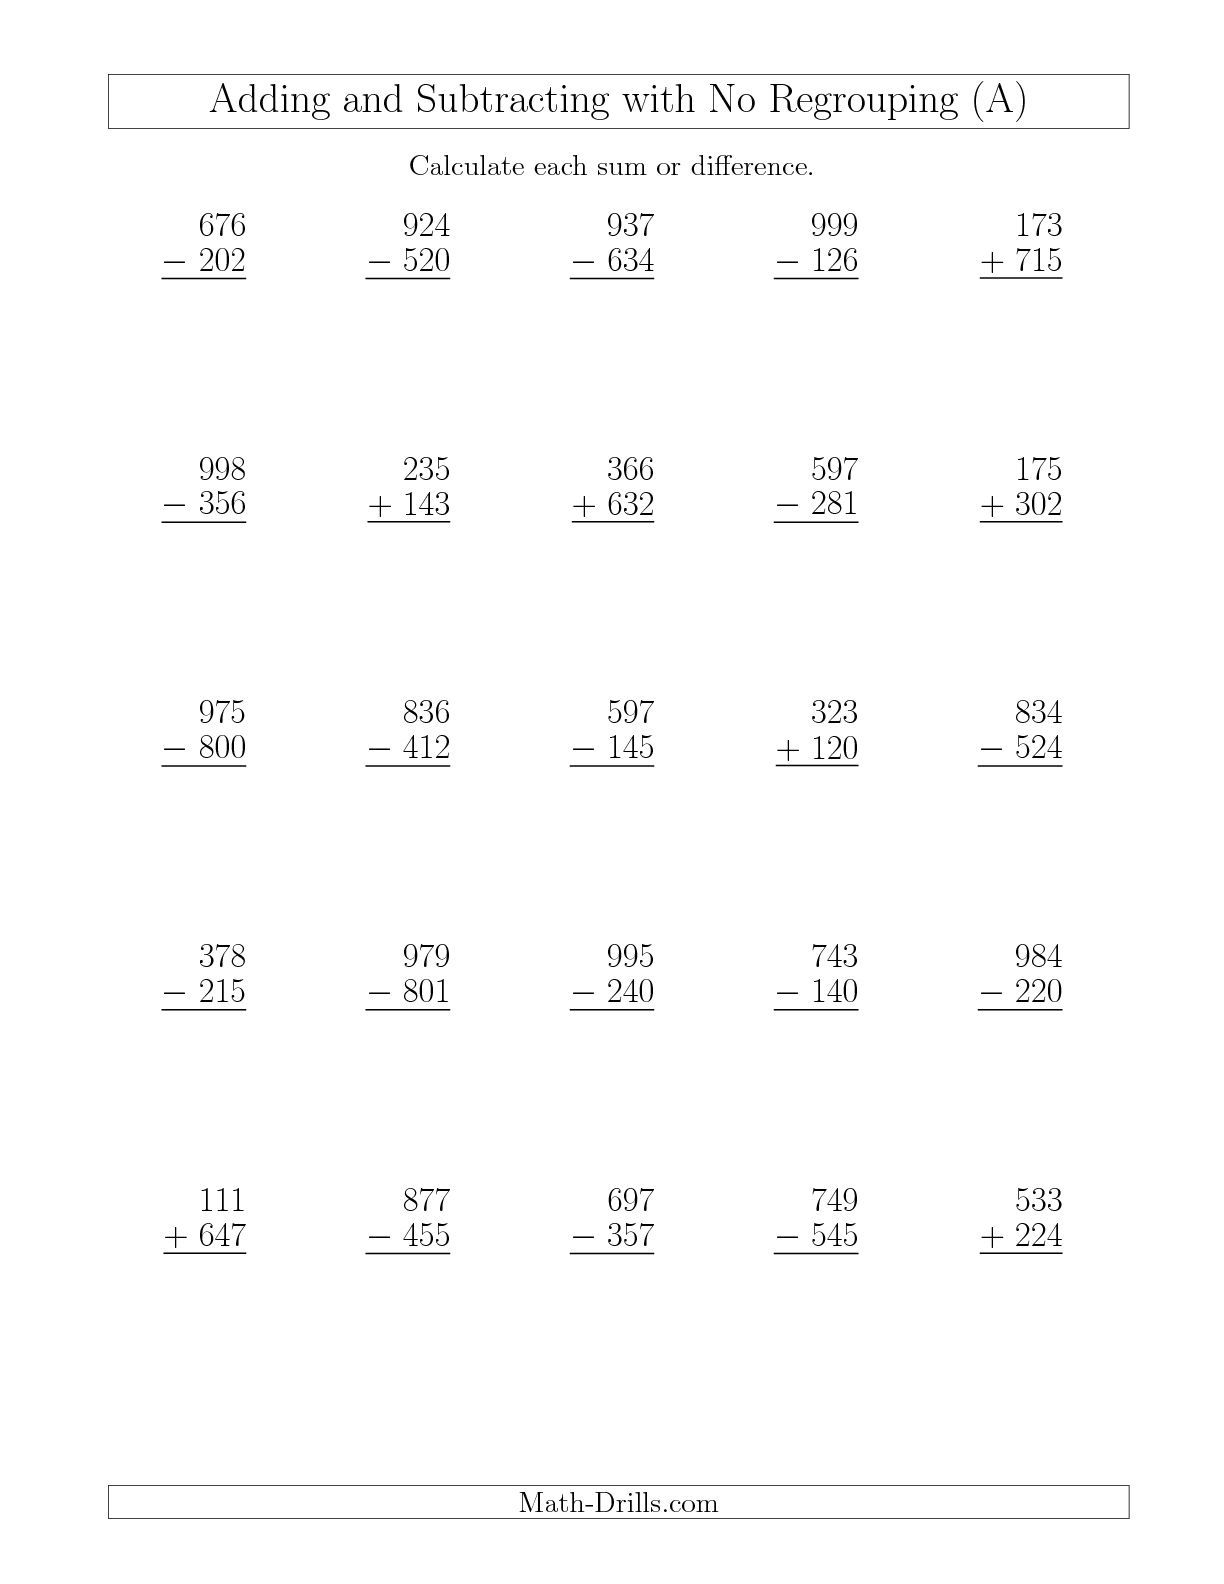 The Mixed Addition And Subtraction Of Three Digit Numbers With No - Free Printable 3 Digit Subtraction With Regrouping Worksheets